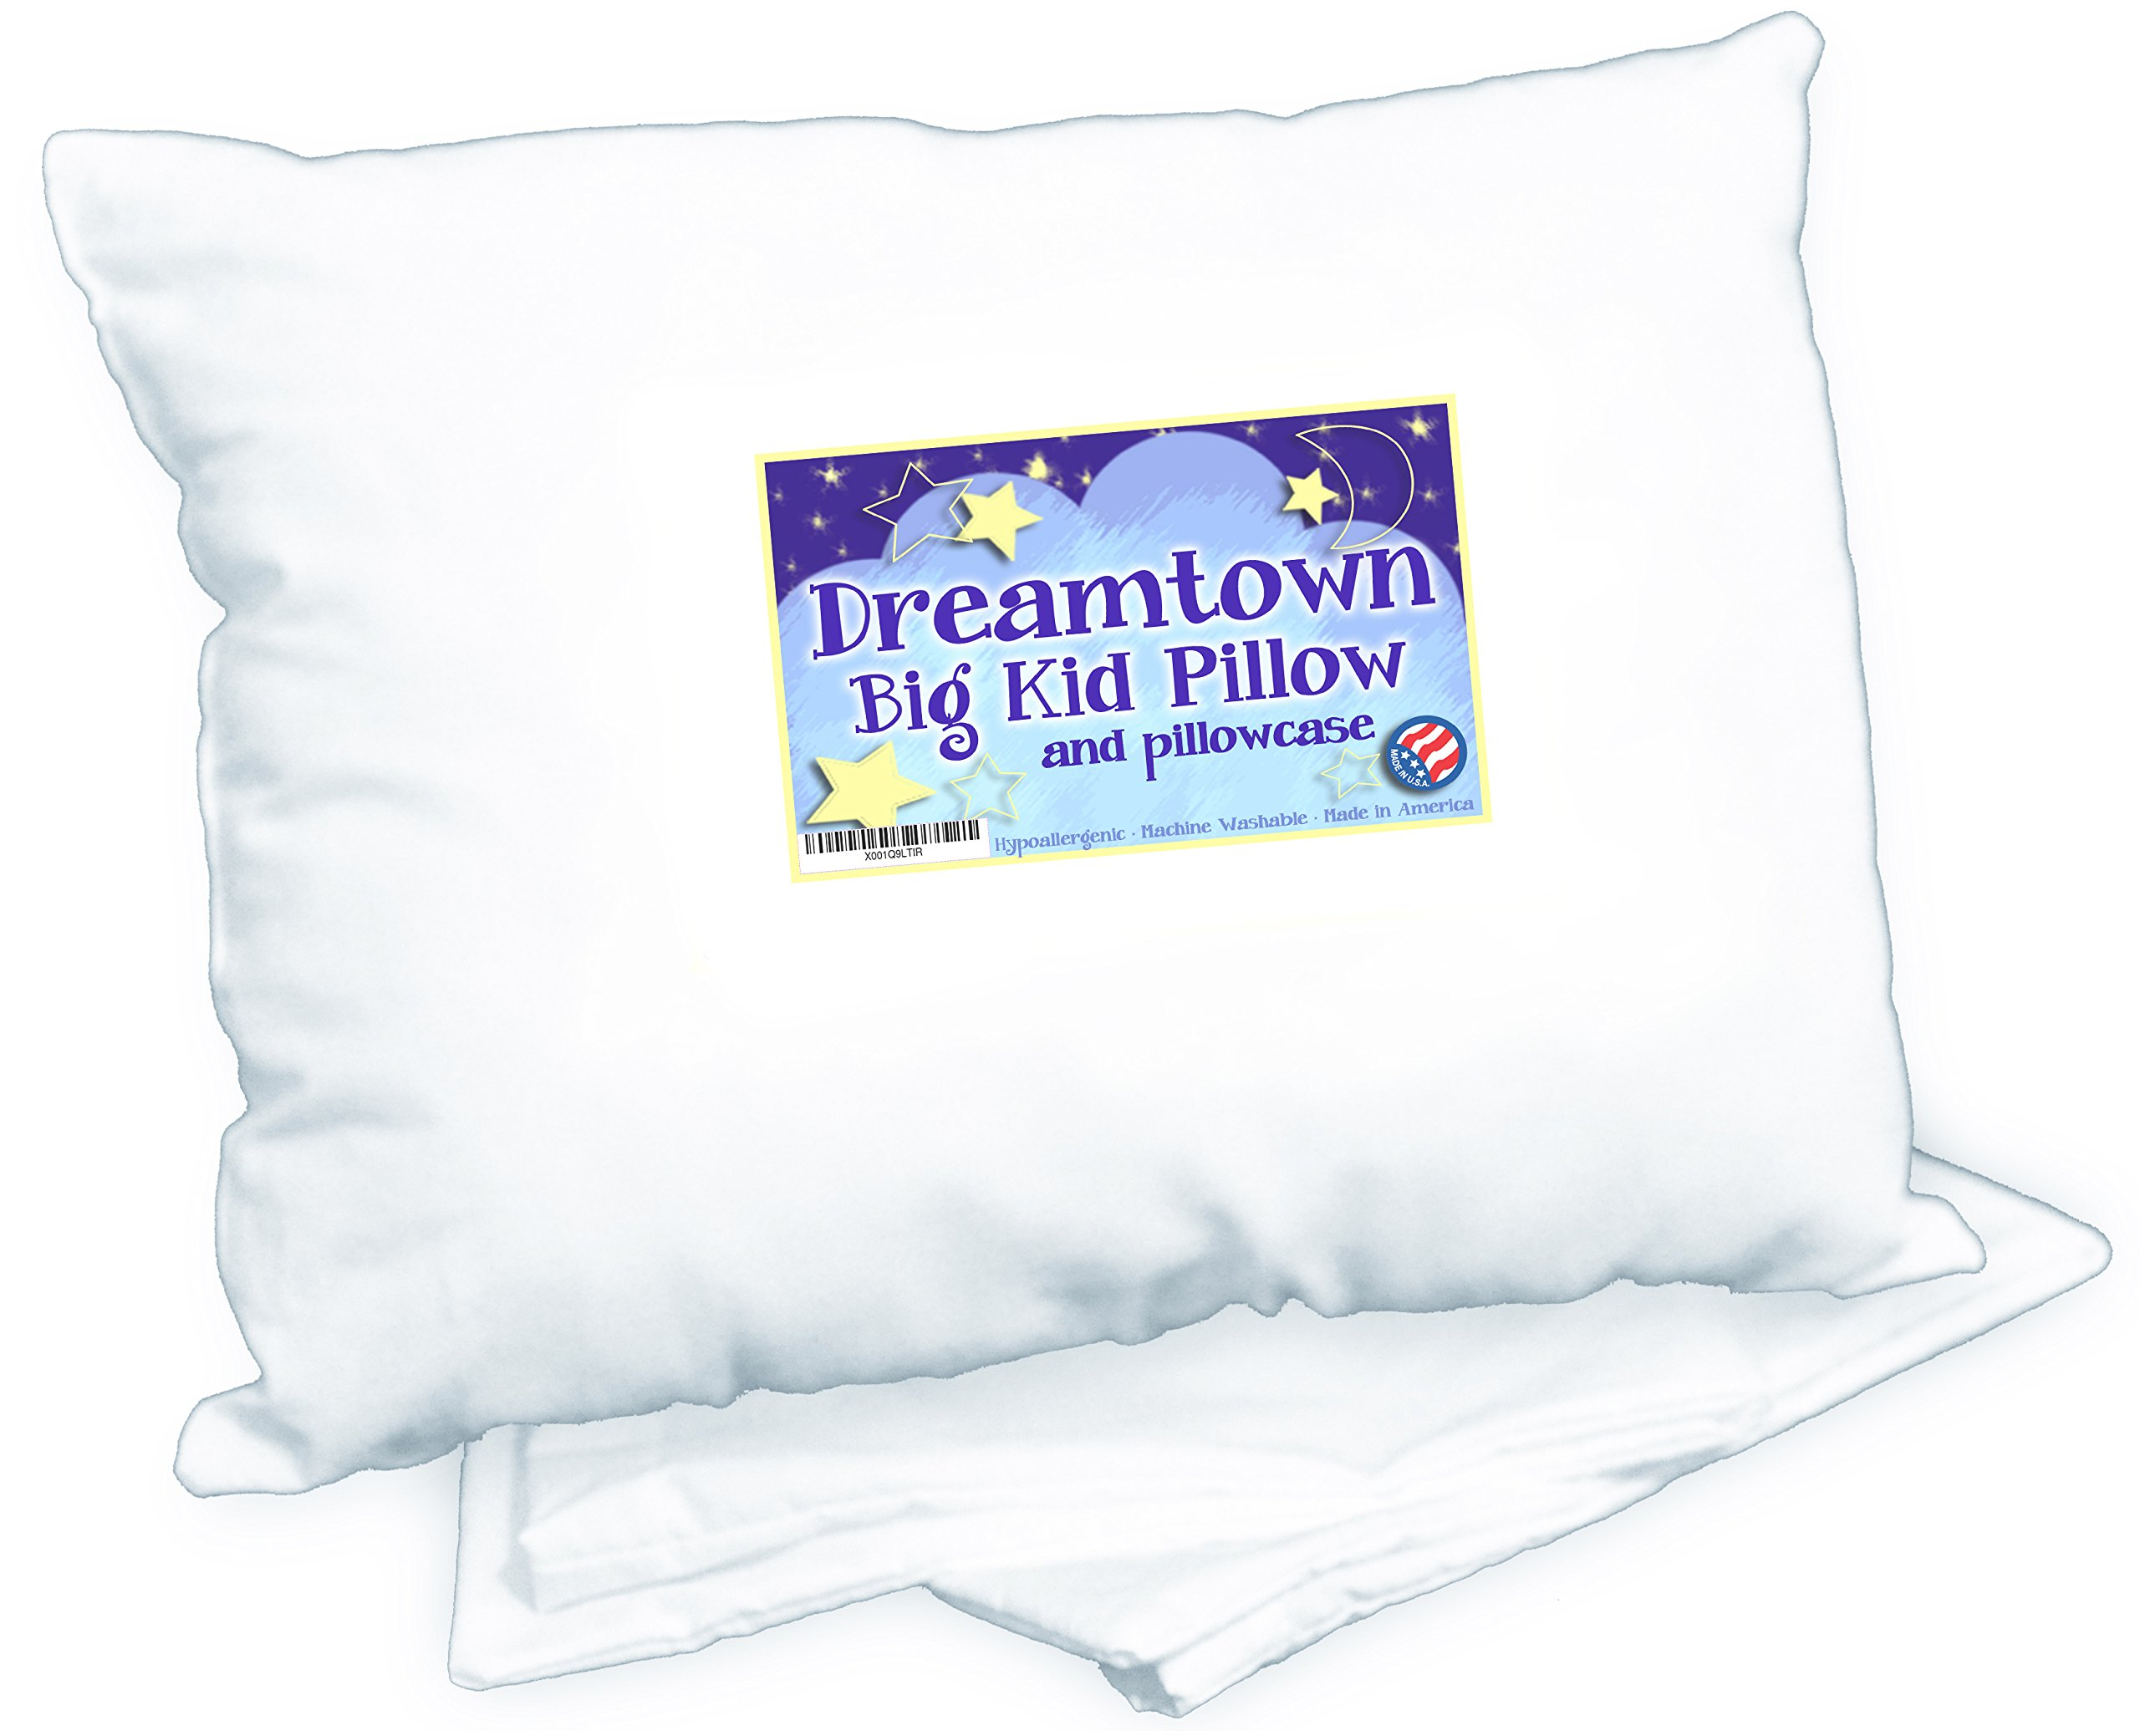 Big Kid Pillow with Pillowcase by Dreamtown Kids 16 x 22 100% Cotton Made in USA White